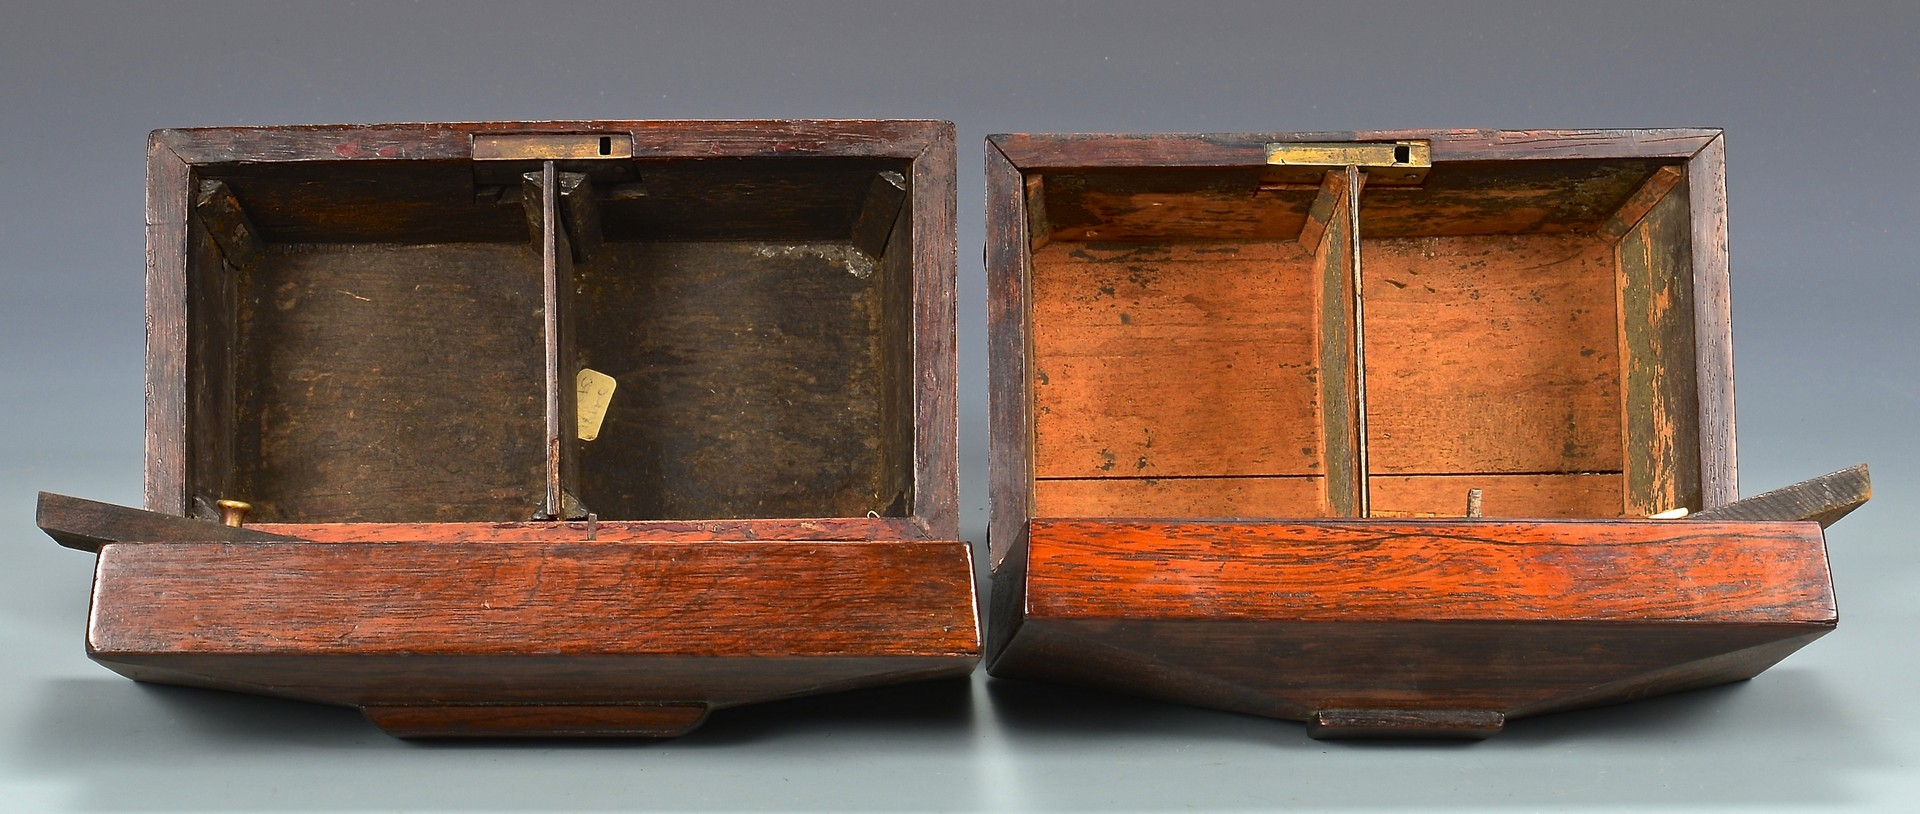 Lot 687: 5 wooden Boxes, incl. 3 Tea Caddies